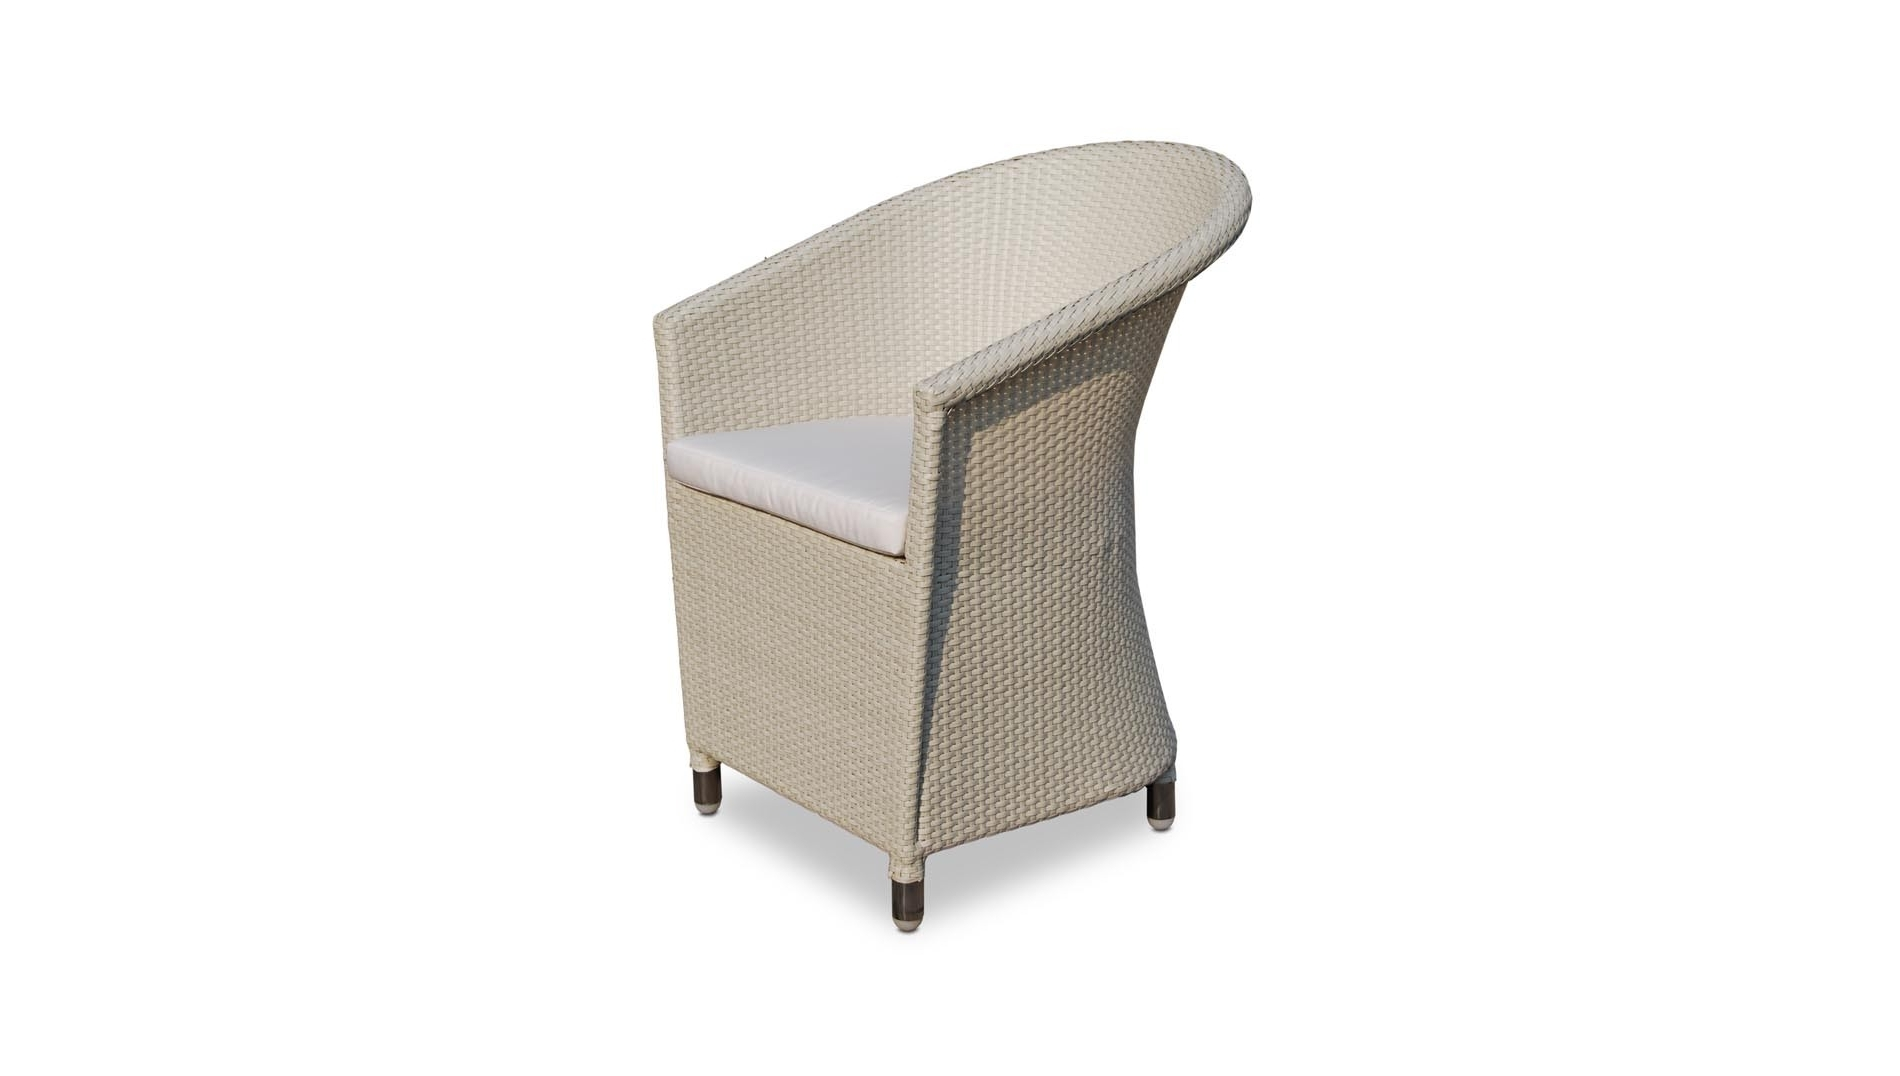 Skyline Design, Chester Dining Chair, Buy Online At Luxdeco Throughout Most Recent Chester Dining Chairs (View 20 of 25)